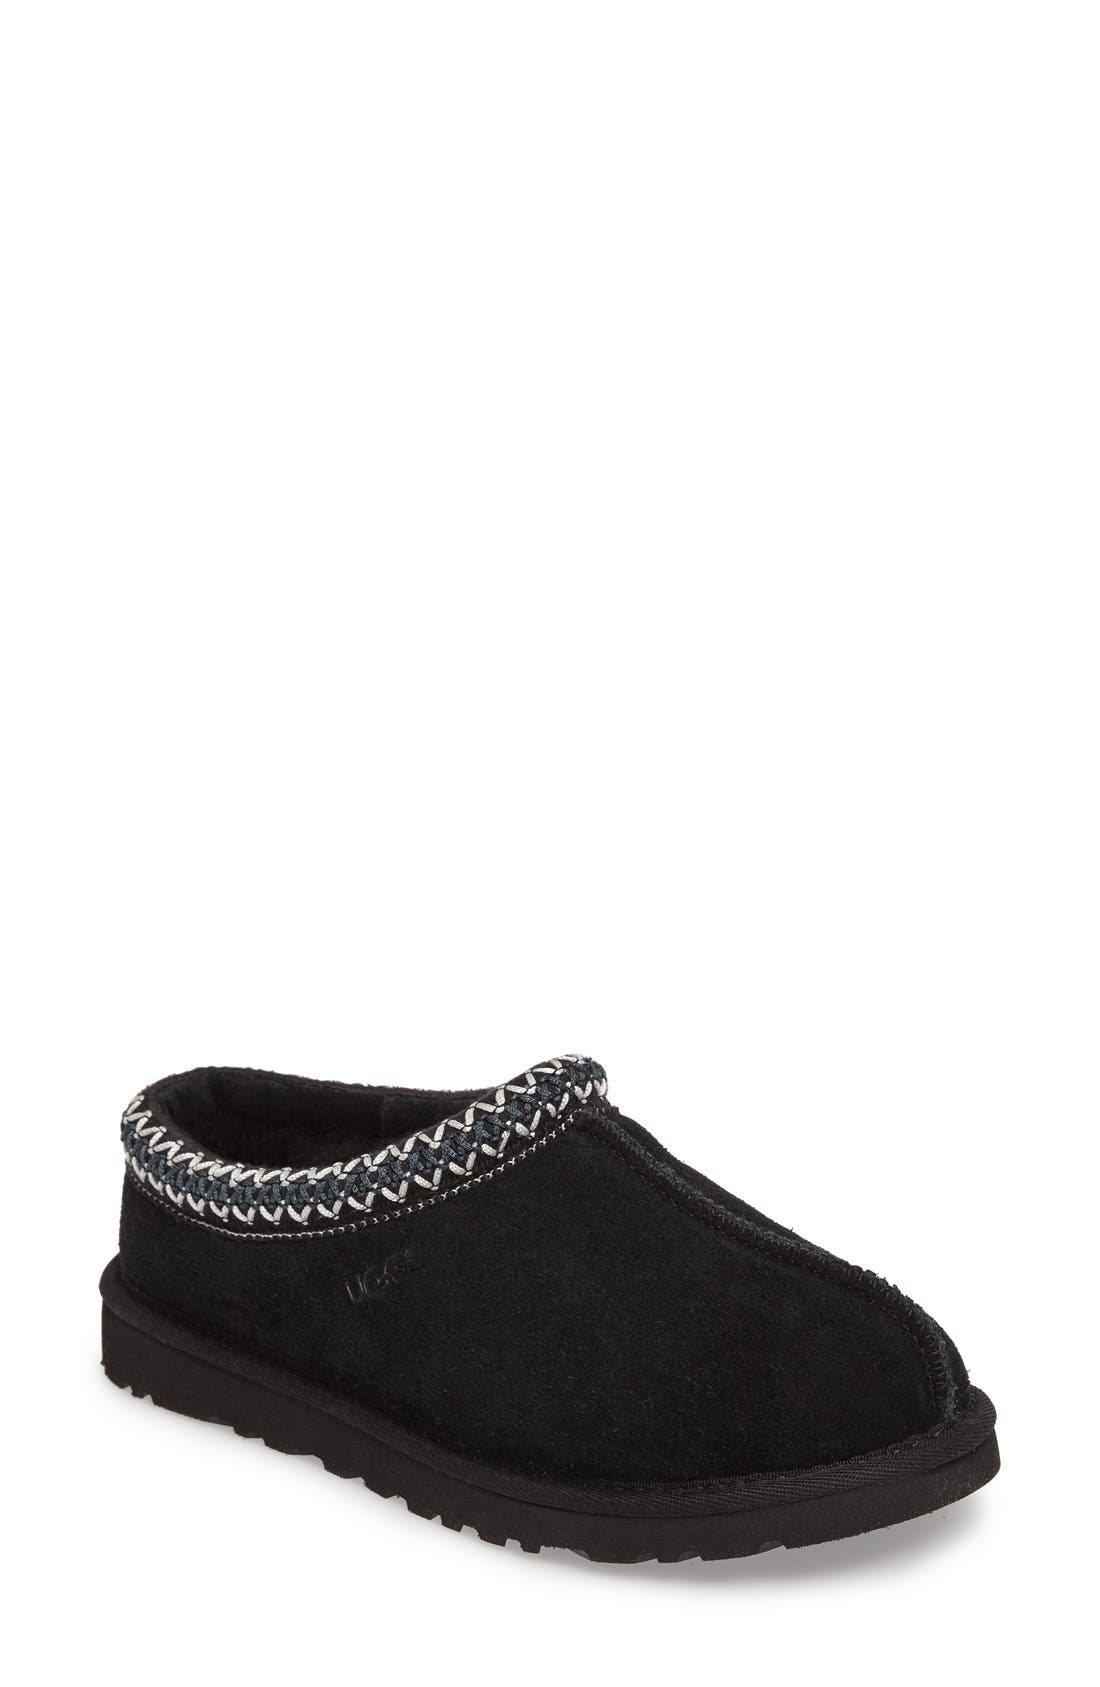 Main Image - UGG® 'Tasman' Slipper (Women)